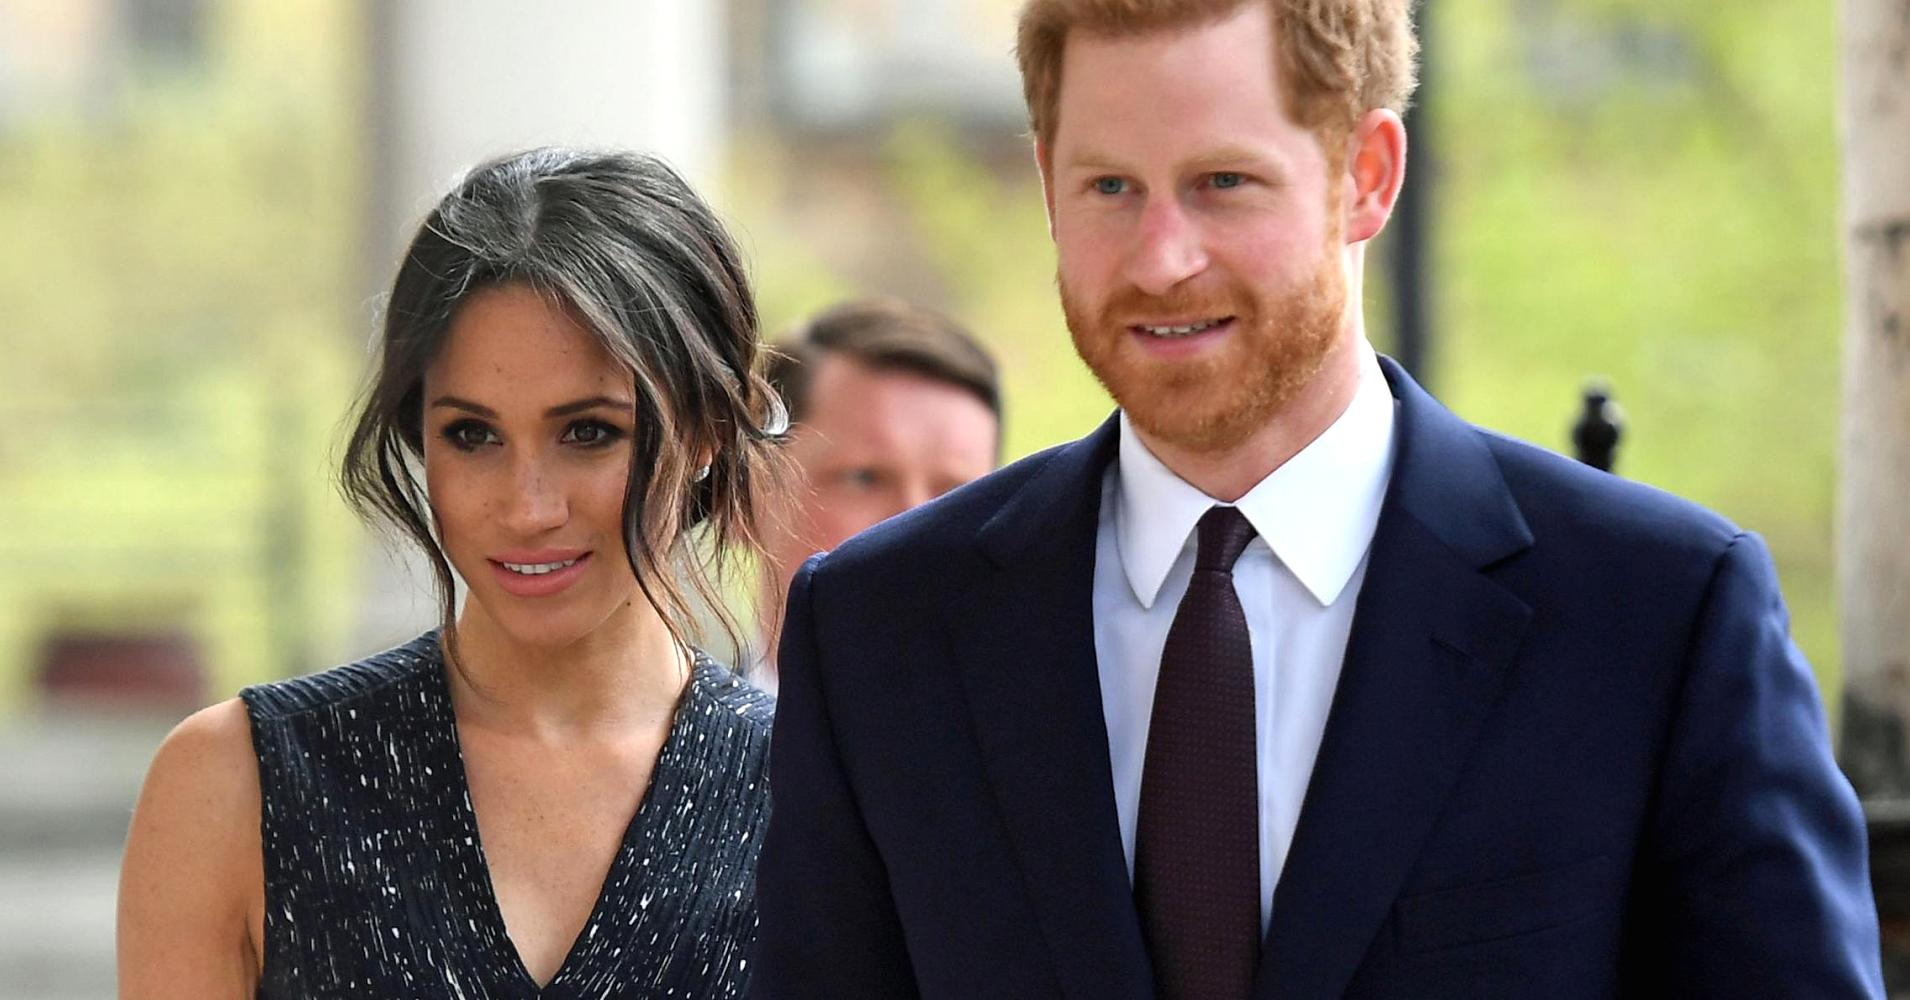 Police Ordered to Shoot to Kill at Royal Wedding